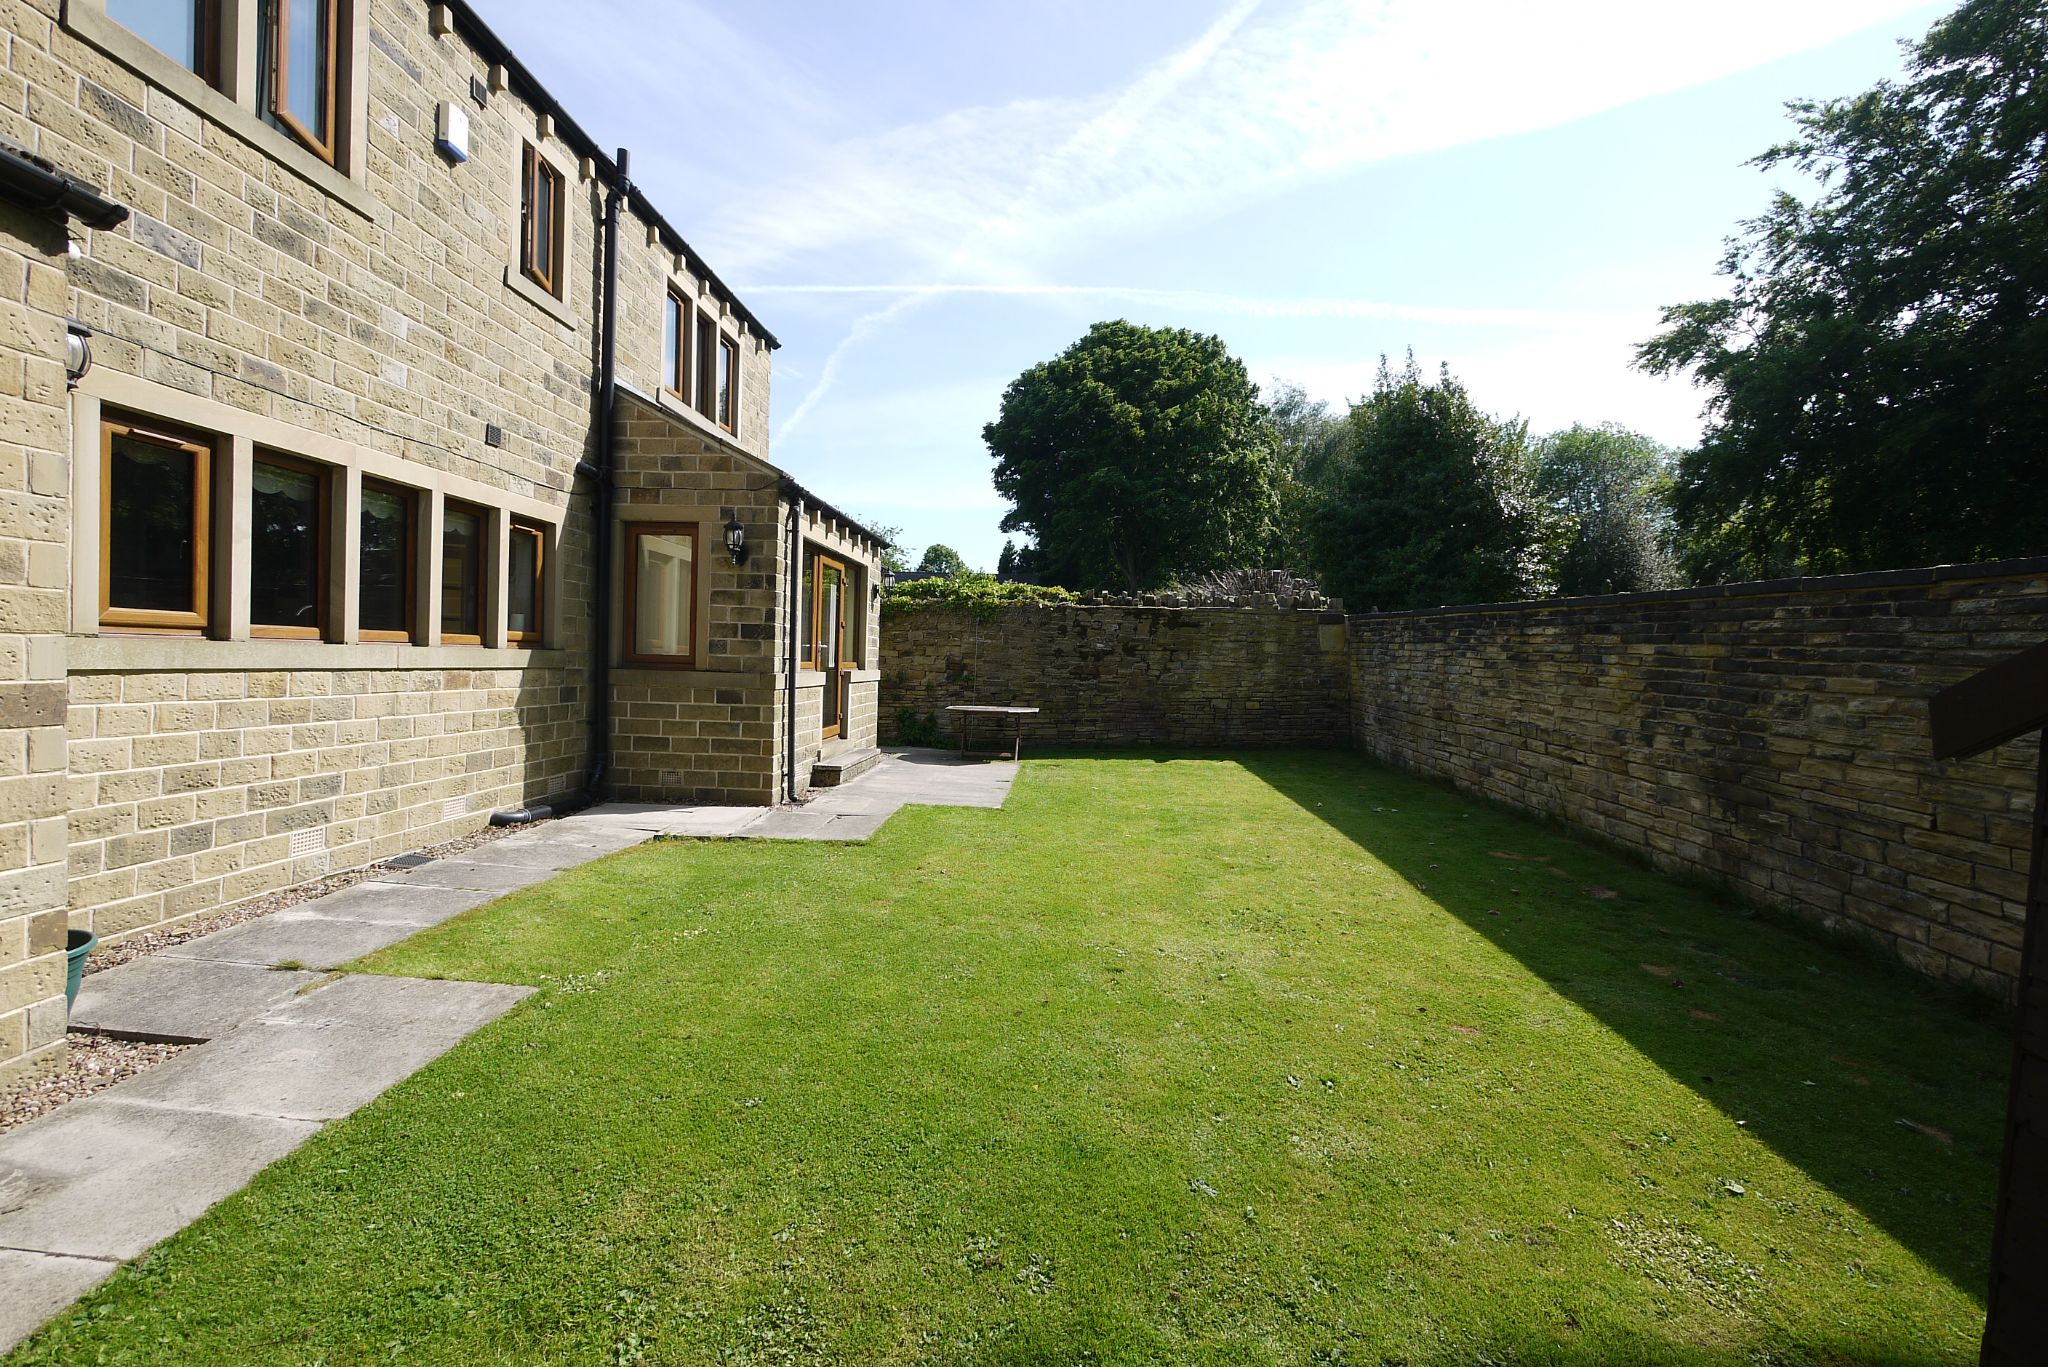 5 bedroom detached house For Sale in Brighouse - Photograph 15.